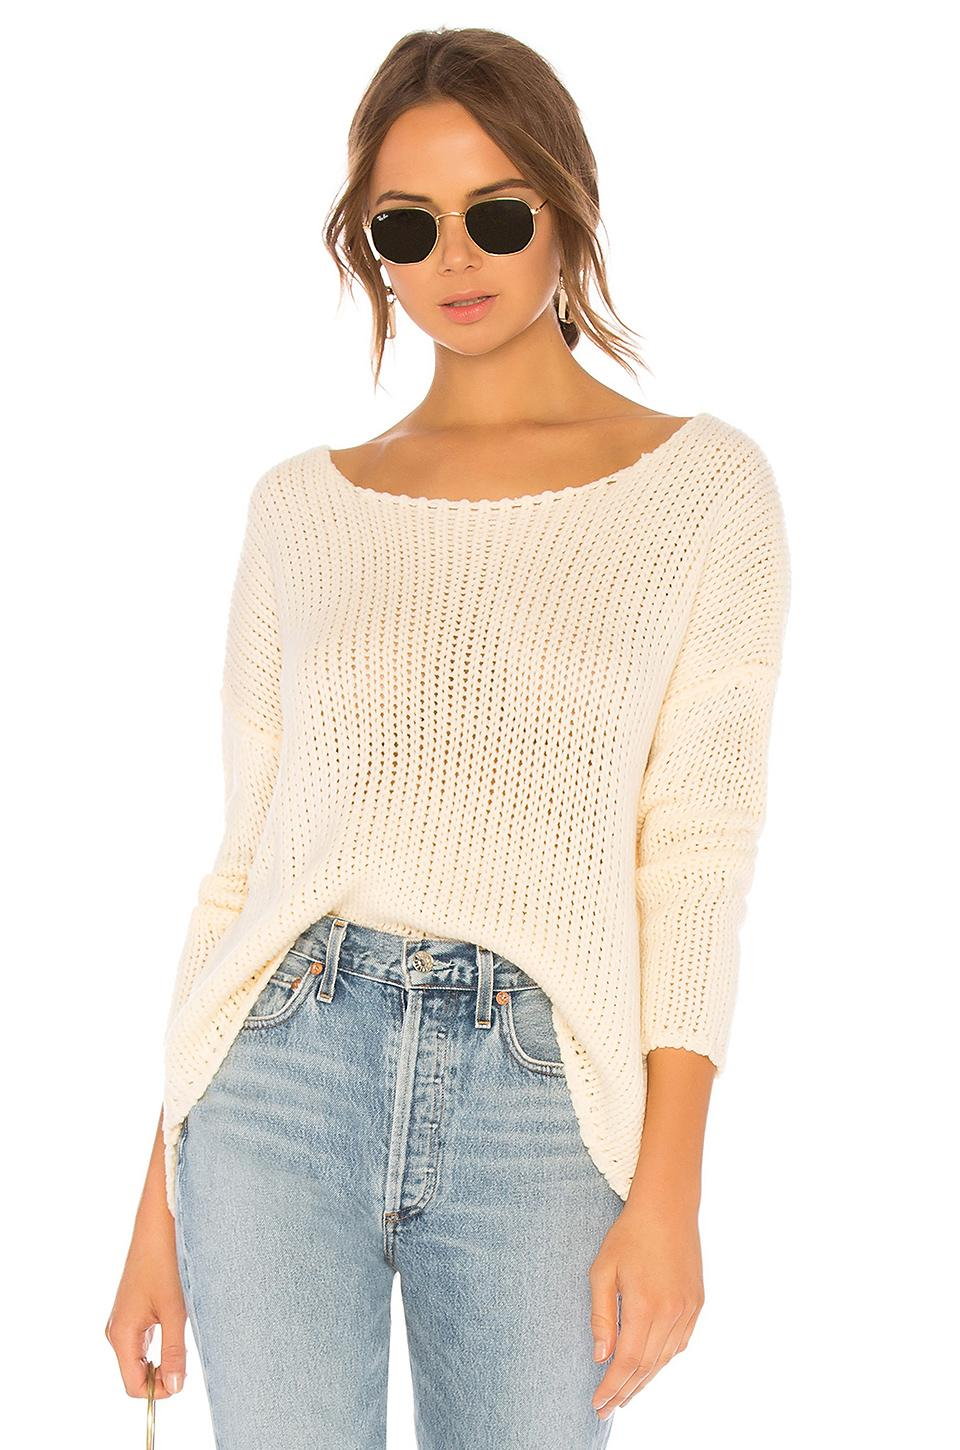 61354c579d4f0 Channel chic off-duty vibes with the Lovers + Friends Sheer Sweater. Crafted  from cozy open knit fabric